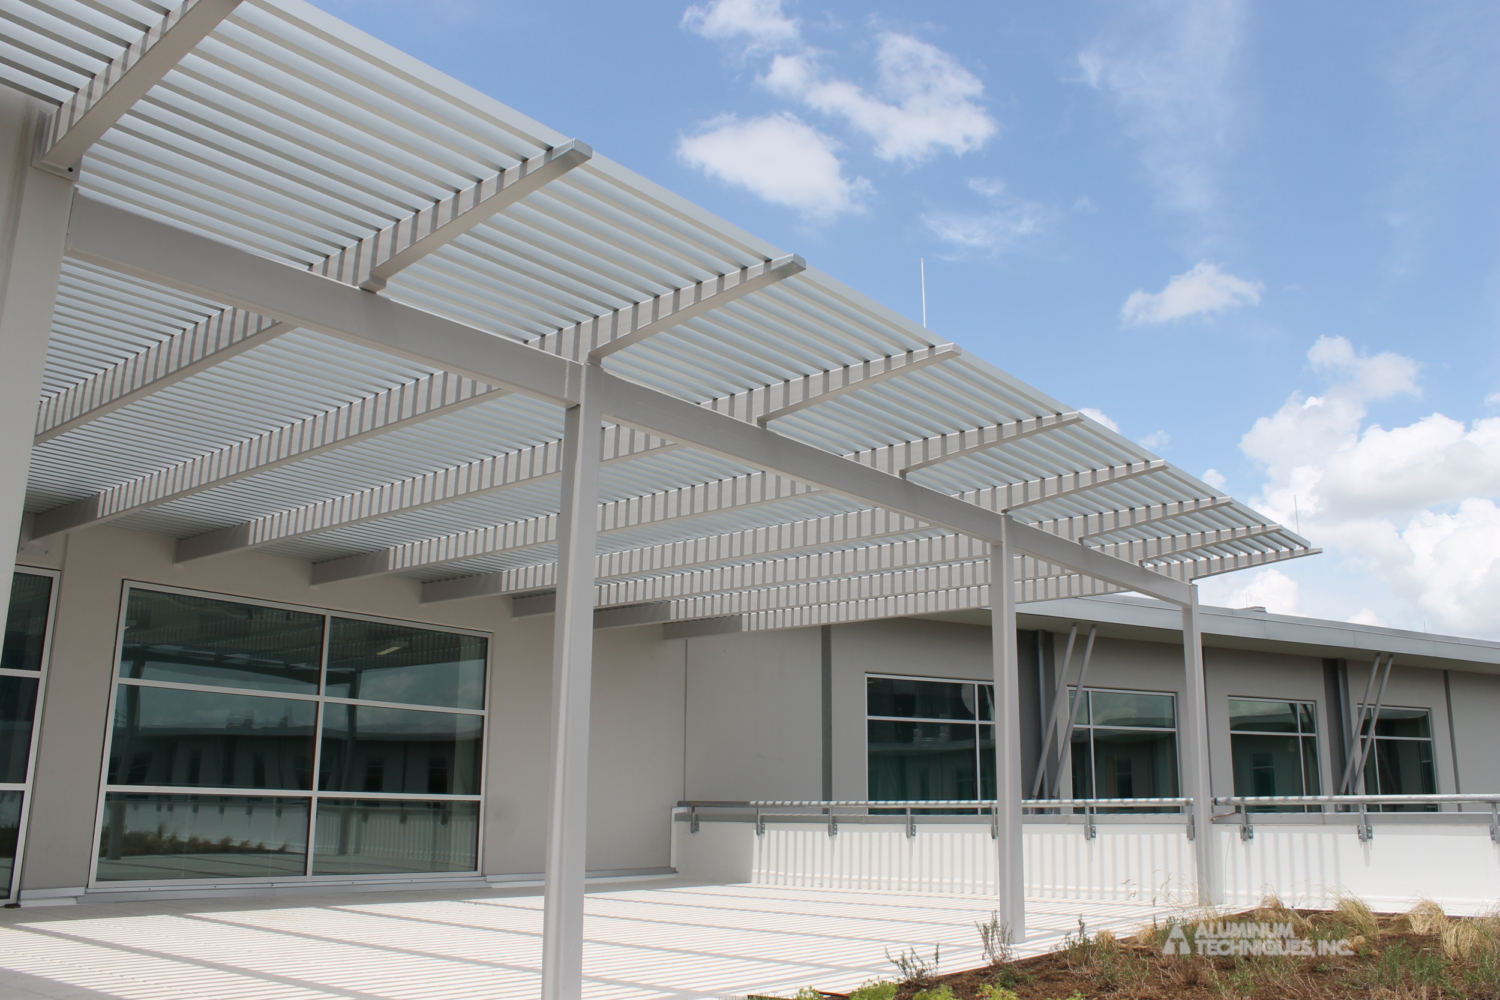 Showing a sun control structure near the front of a building.